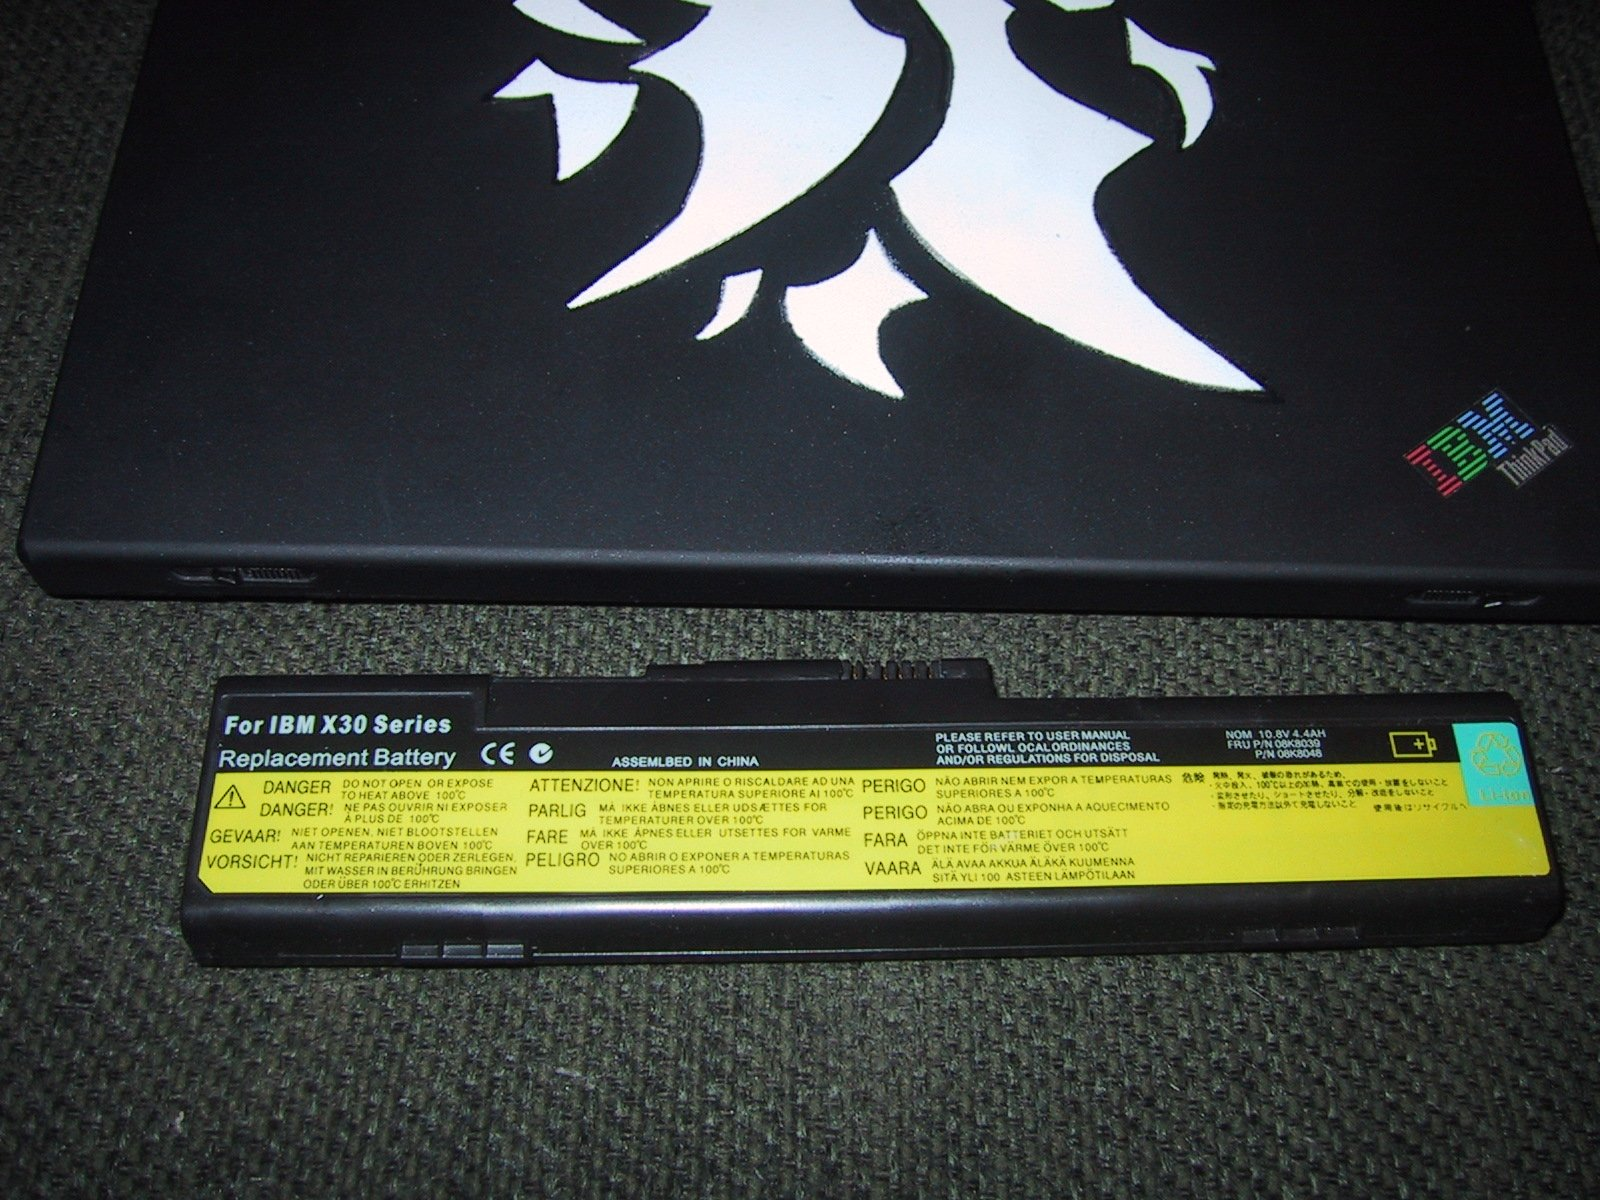 New laptop battery charging instructions not